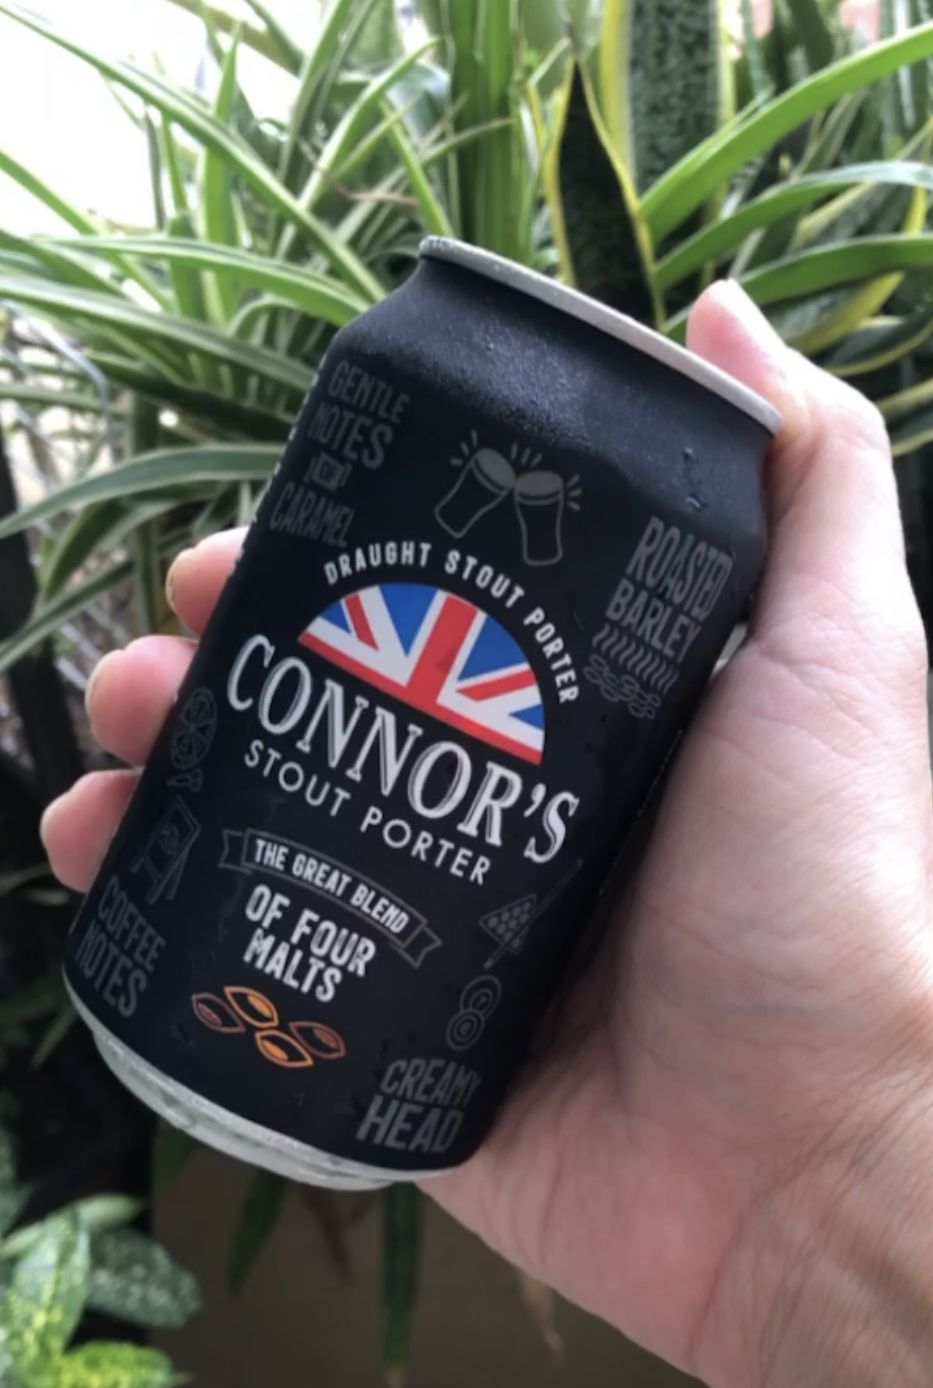 Connor's Stout recently launched a canned version. — Photo: THE STAR/Michael Cheang